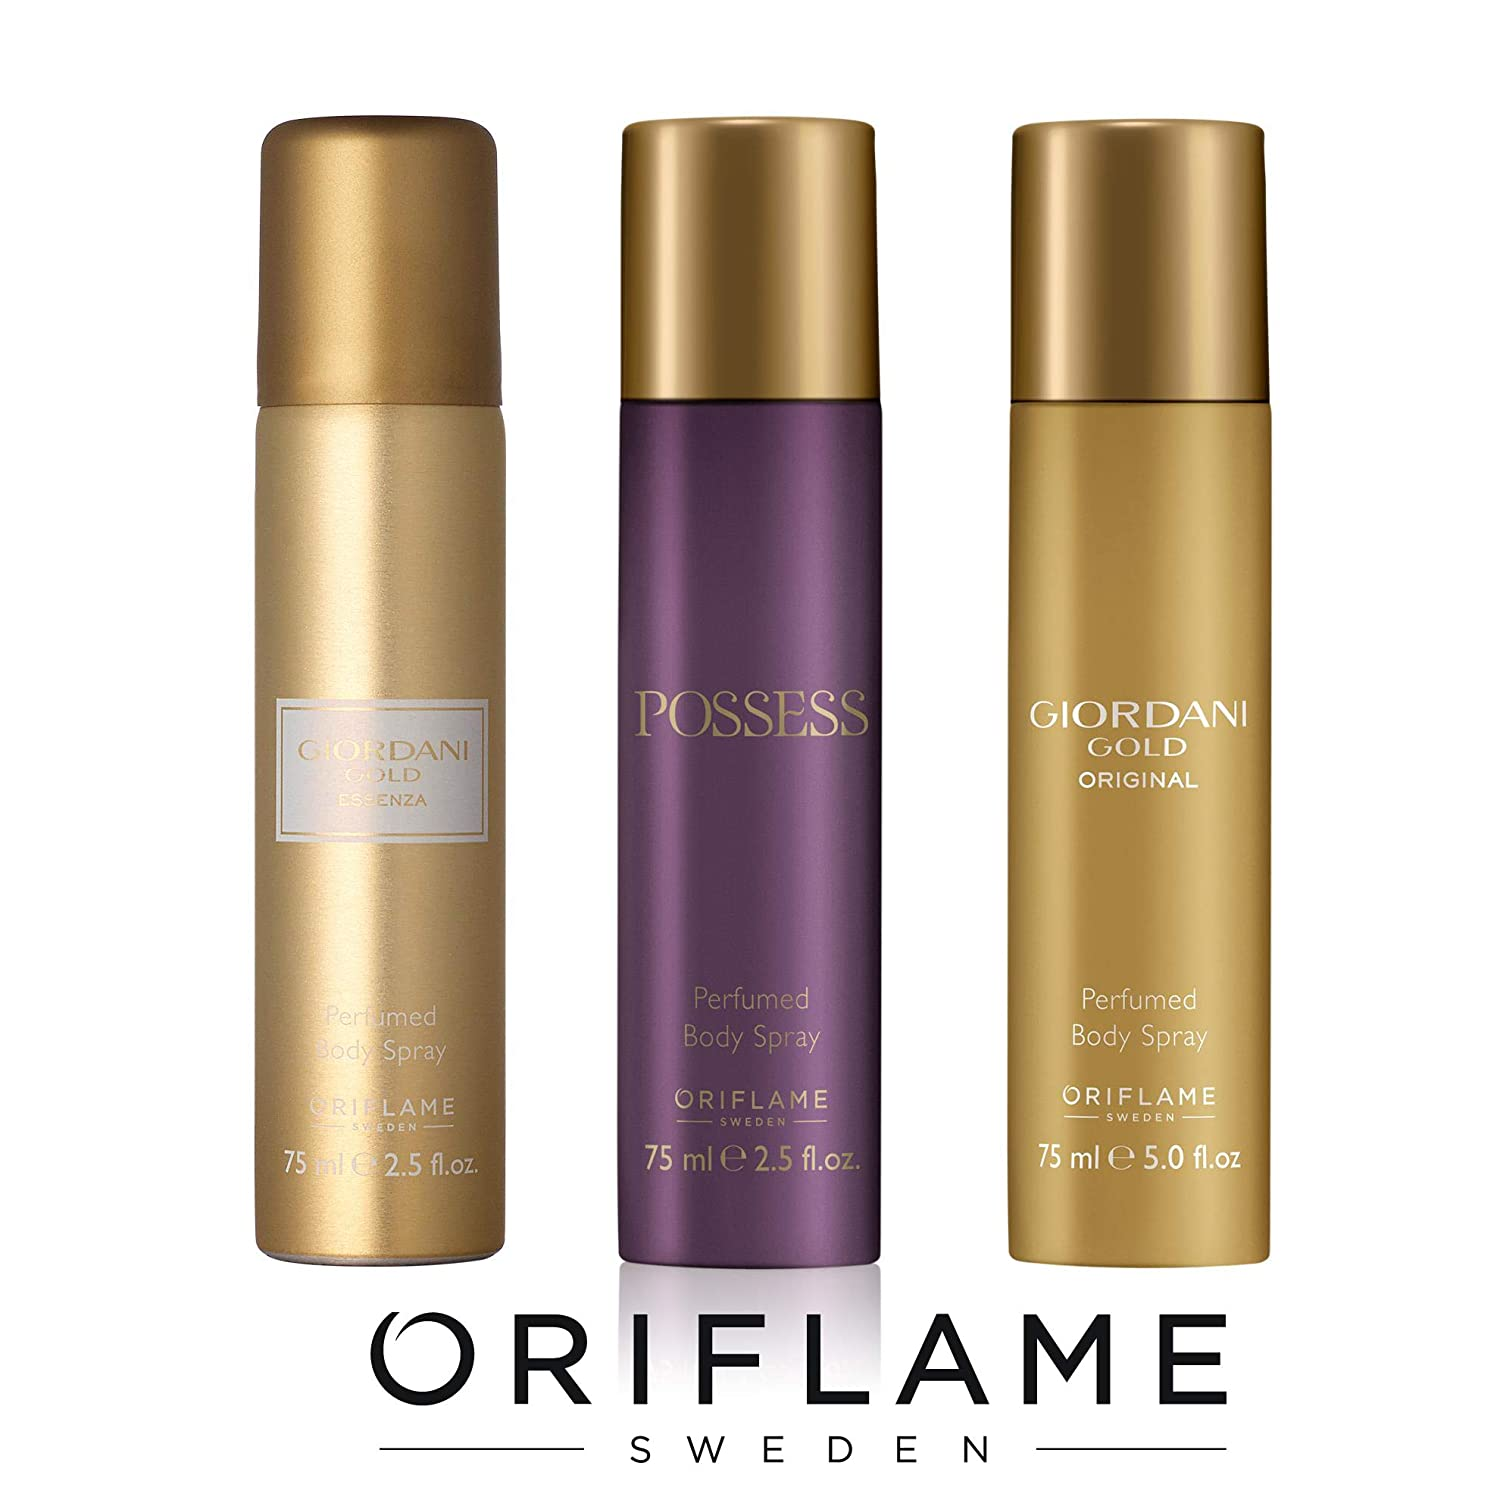 Buy Oriflame Sweden Possess Perfumed Body Spray Essenza Giordani Original White And Gold Set Of 3pc Online At Low